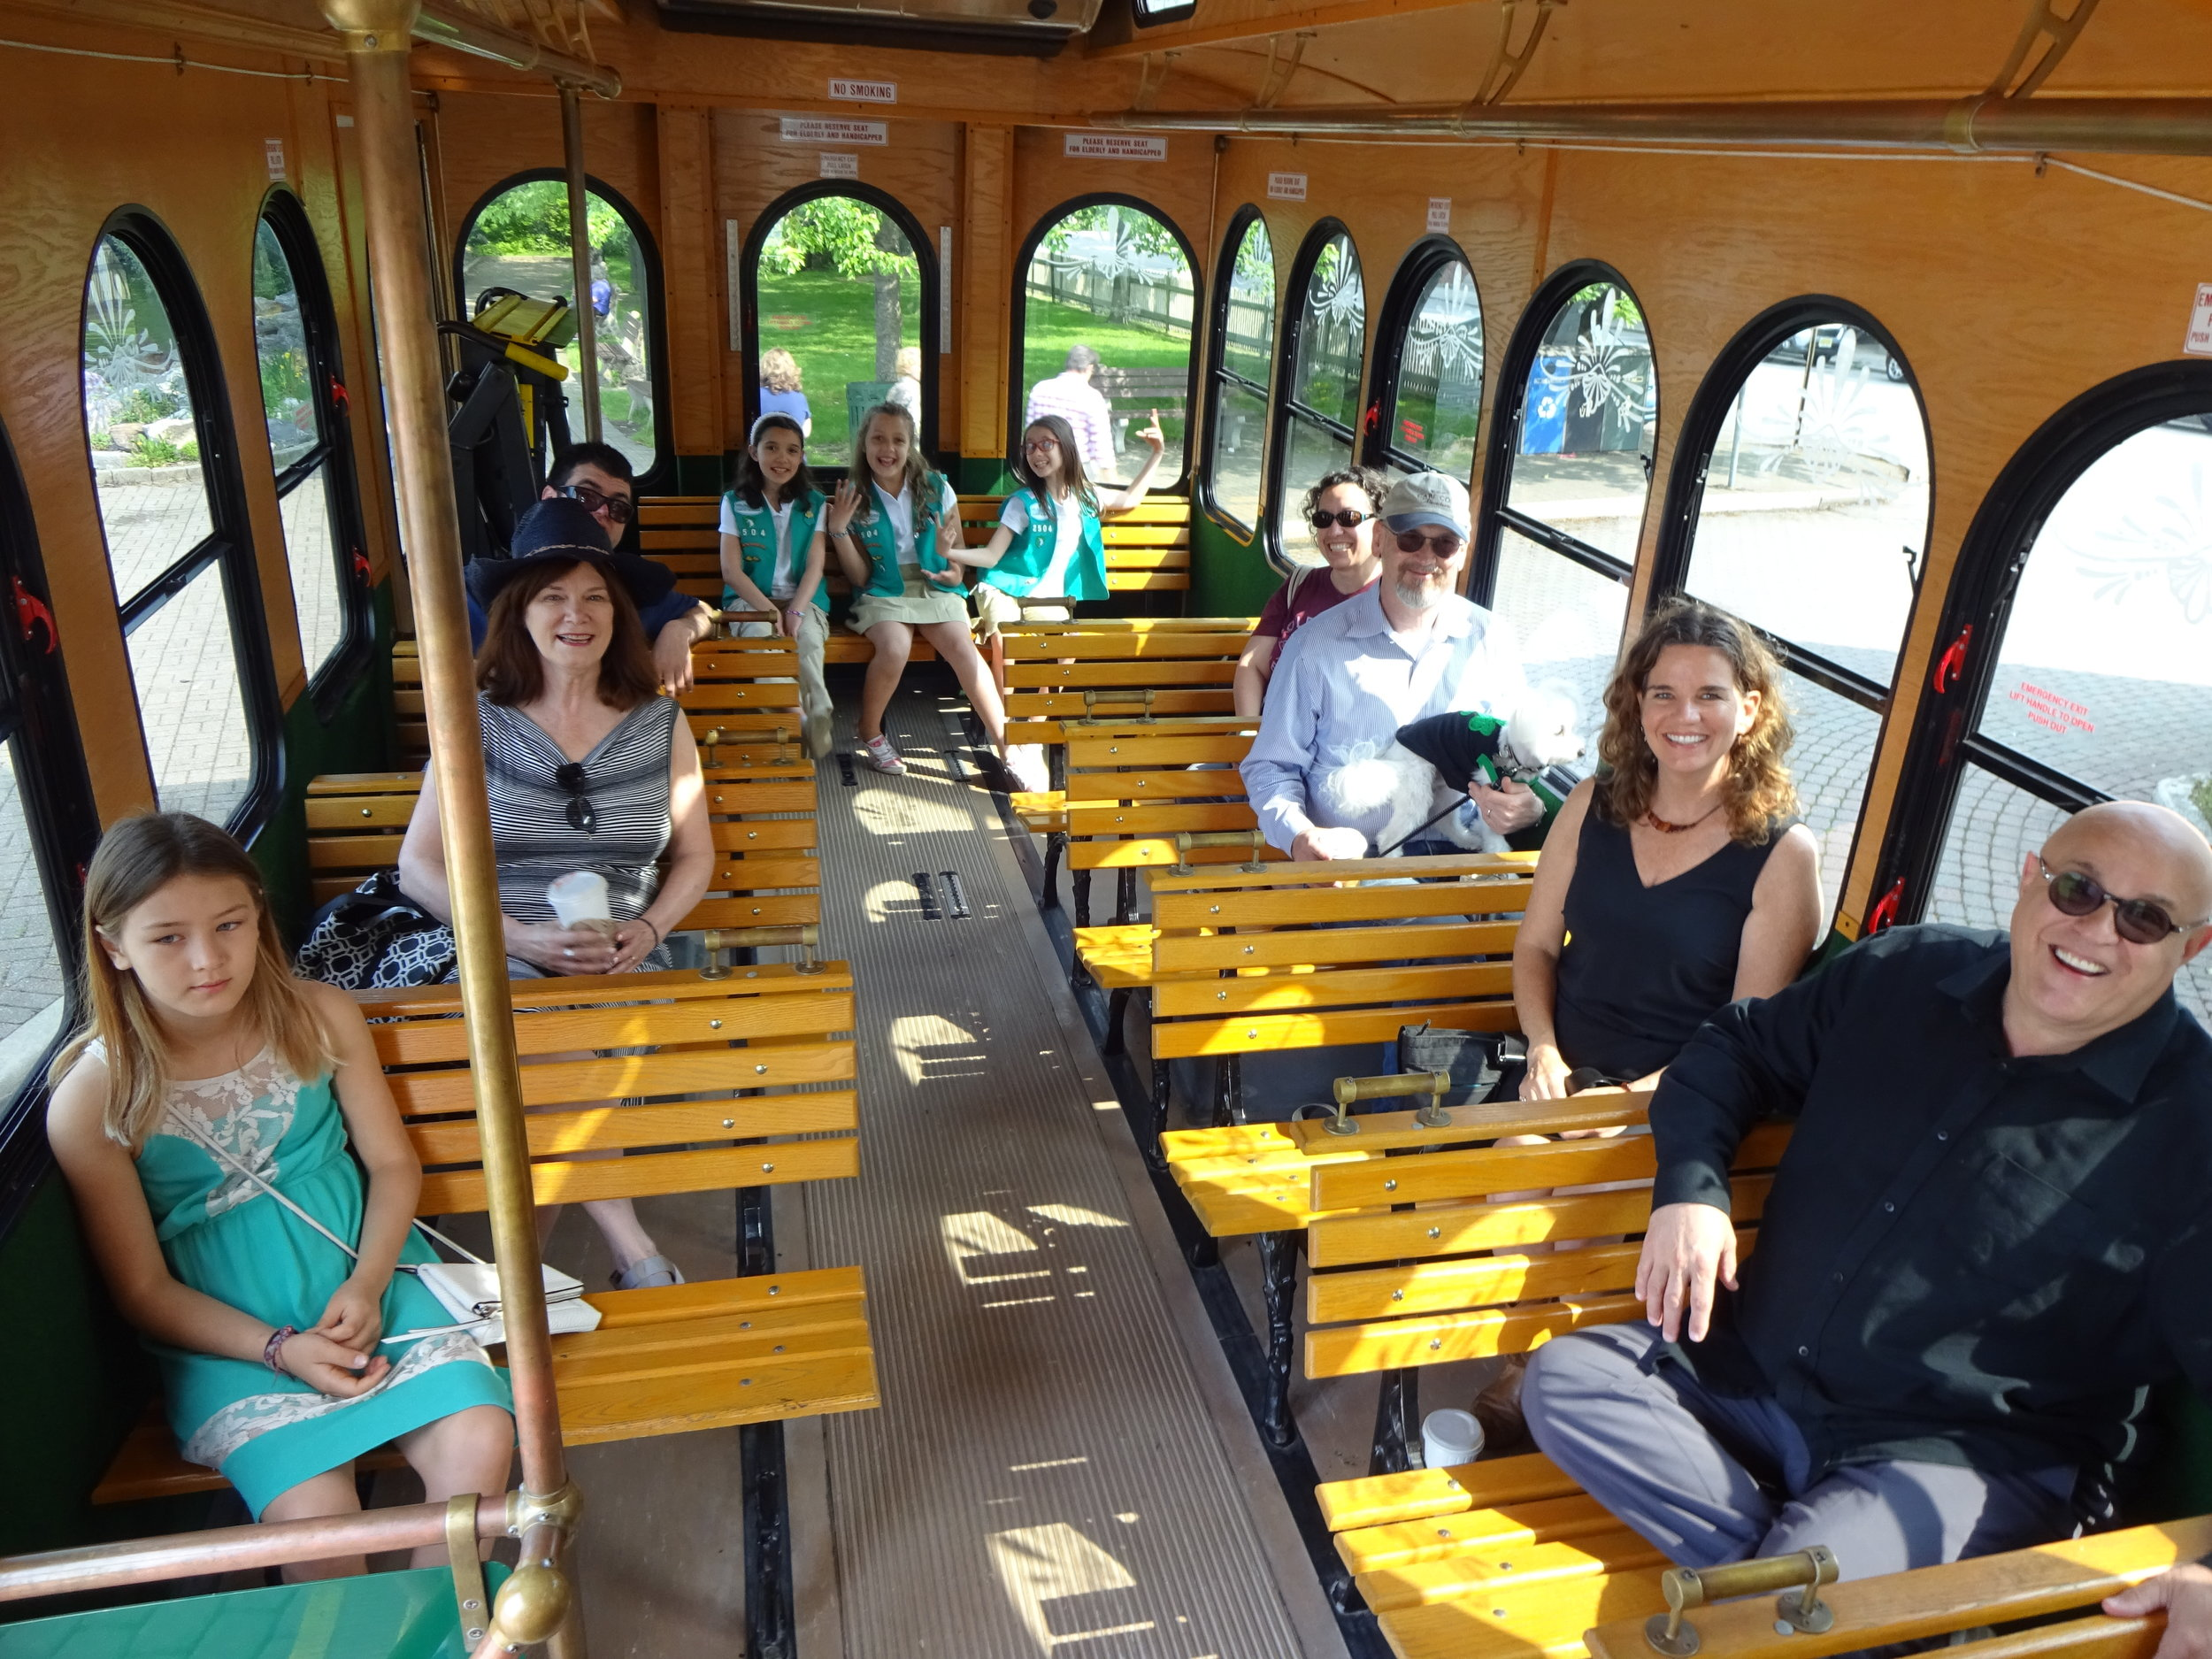 Enjoy The Ride! - Remember to always stay seated while the Trolley is in motion. Be considerate to your trolley driver and fellow riders, and bring any refuse you bring onto the trolley off with you when you exit the trolley. We hope you enjoy your ride.